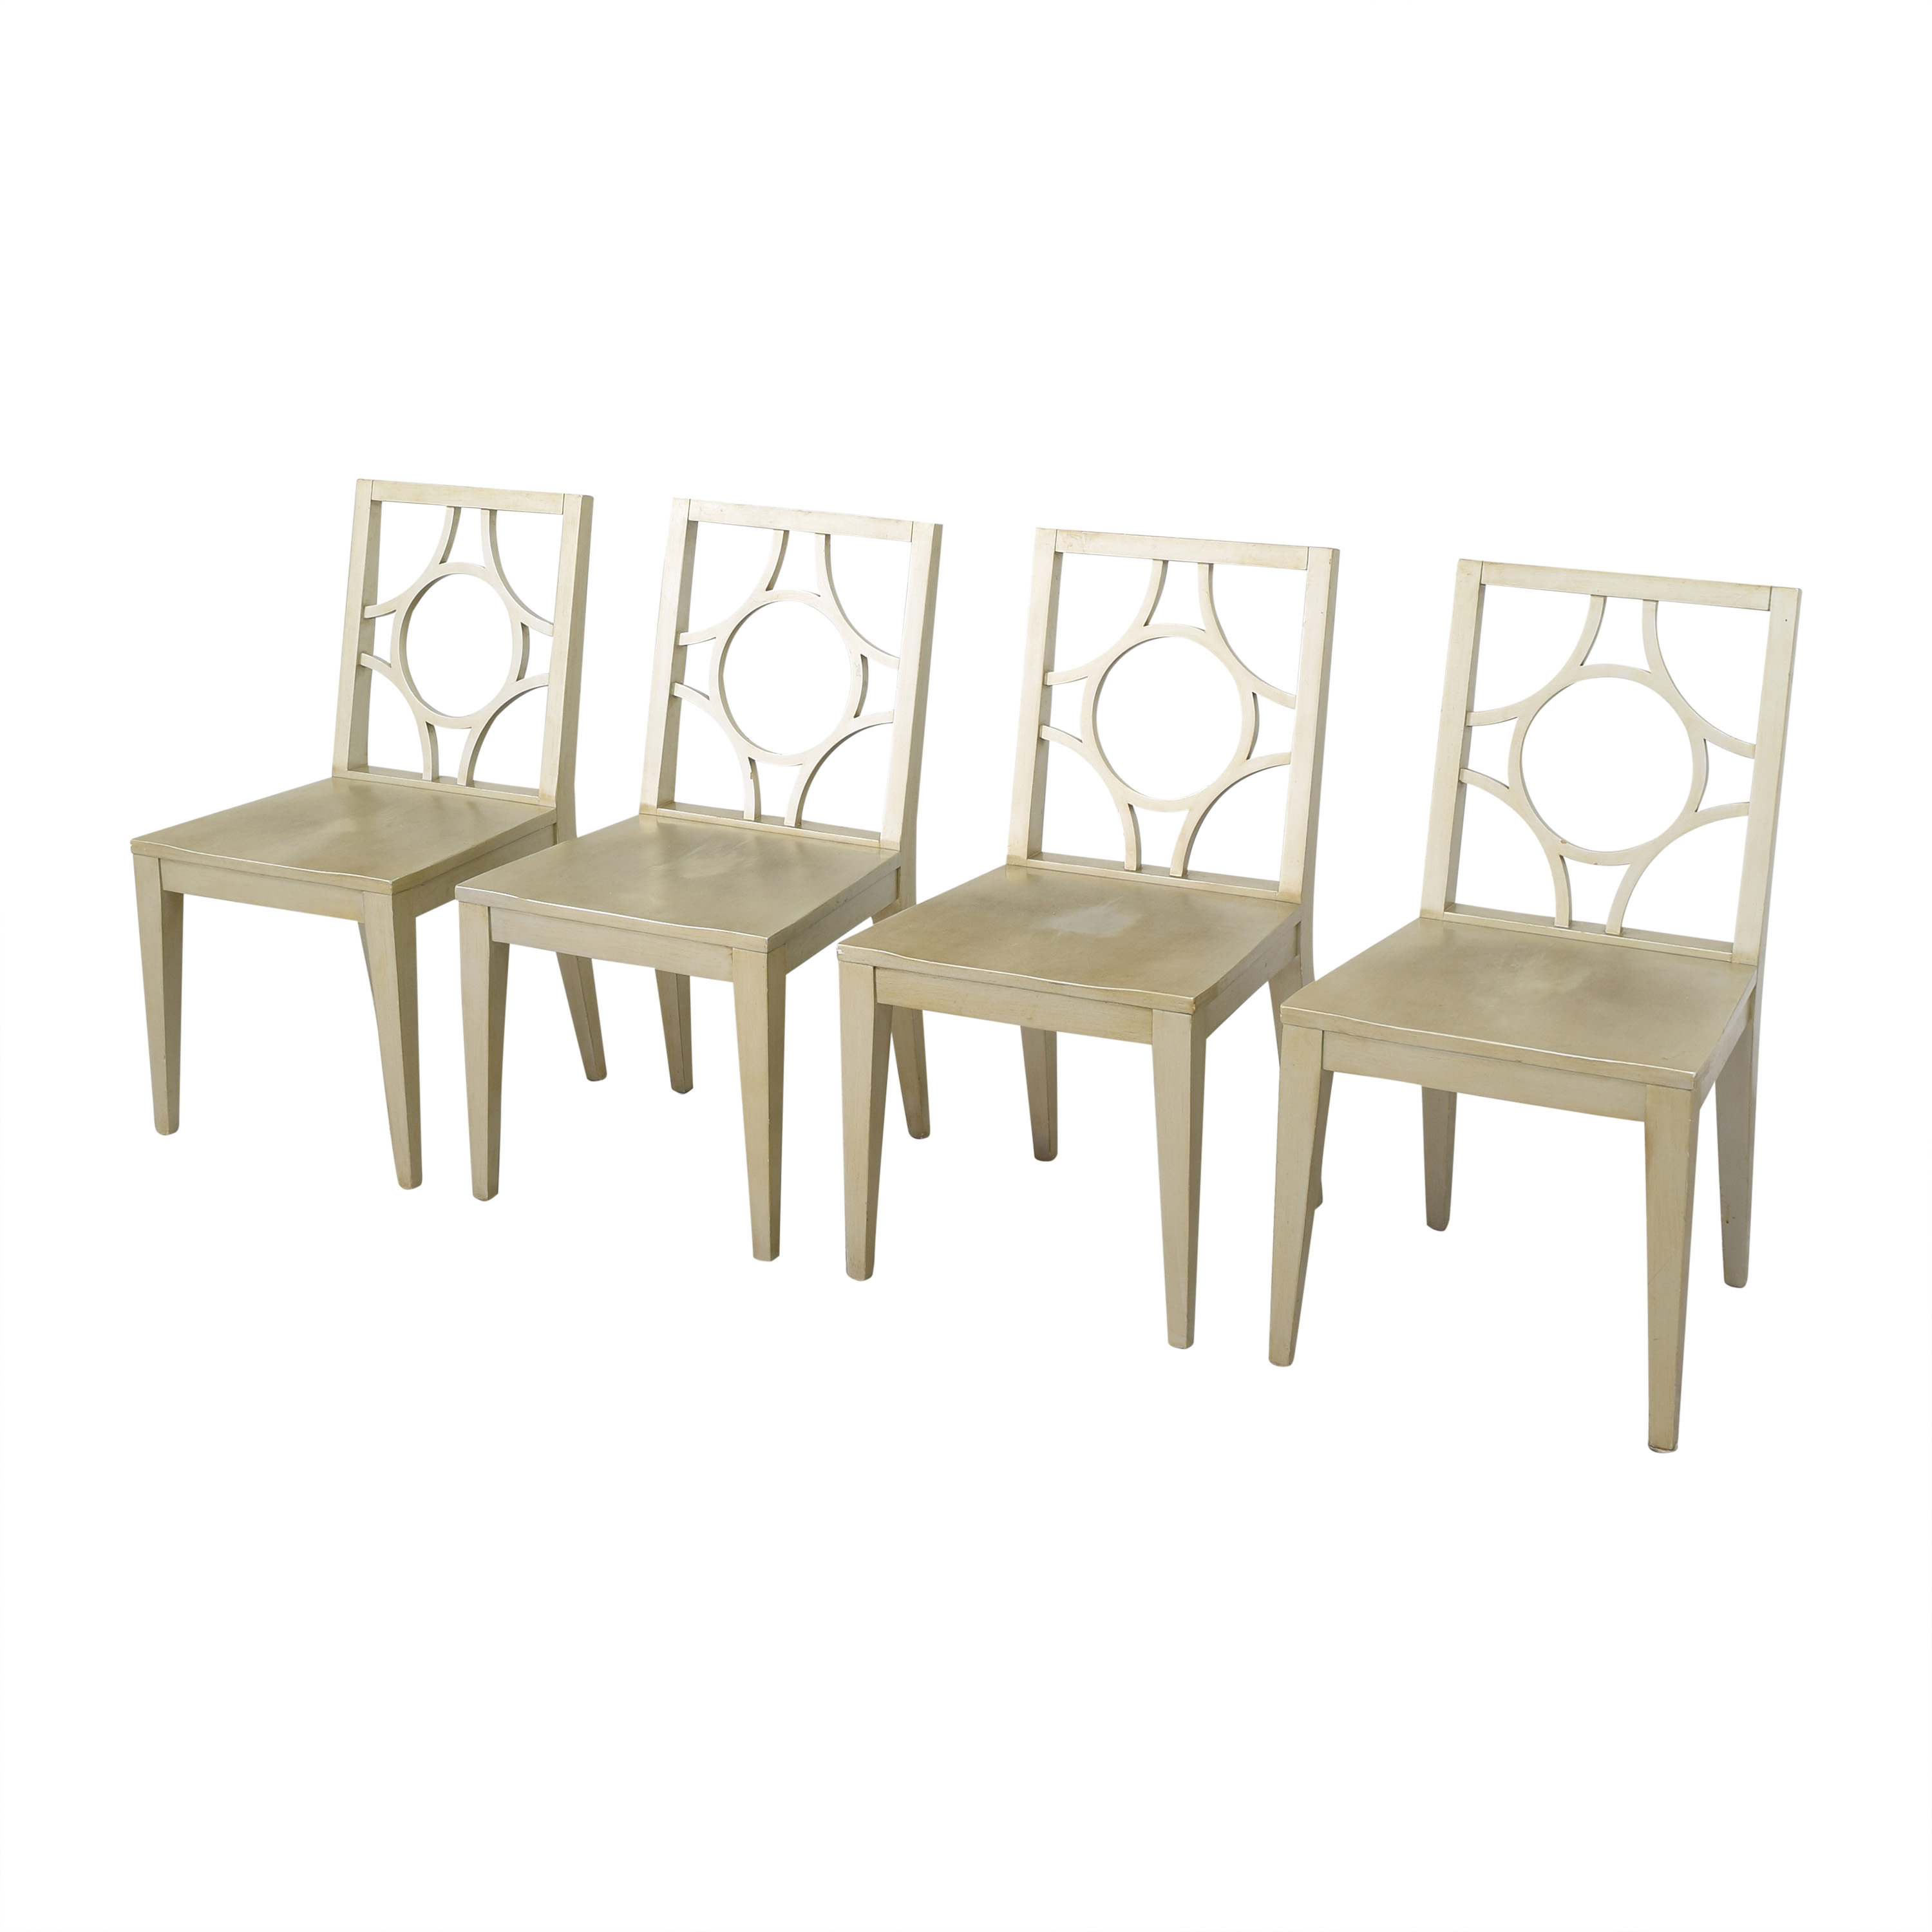 Crate & Barrel Dining Side Chairs / Dining Chairs